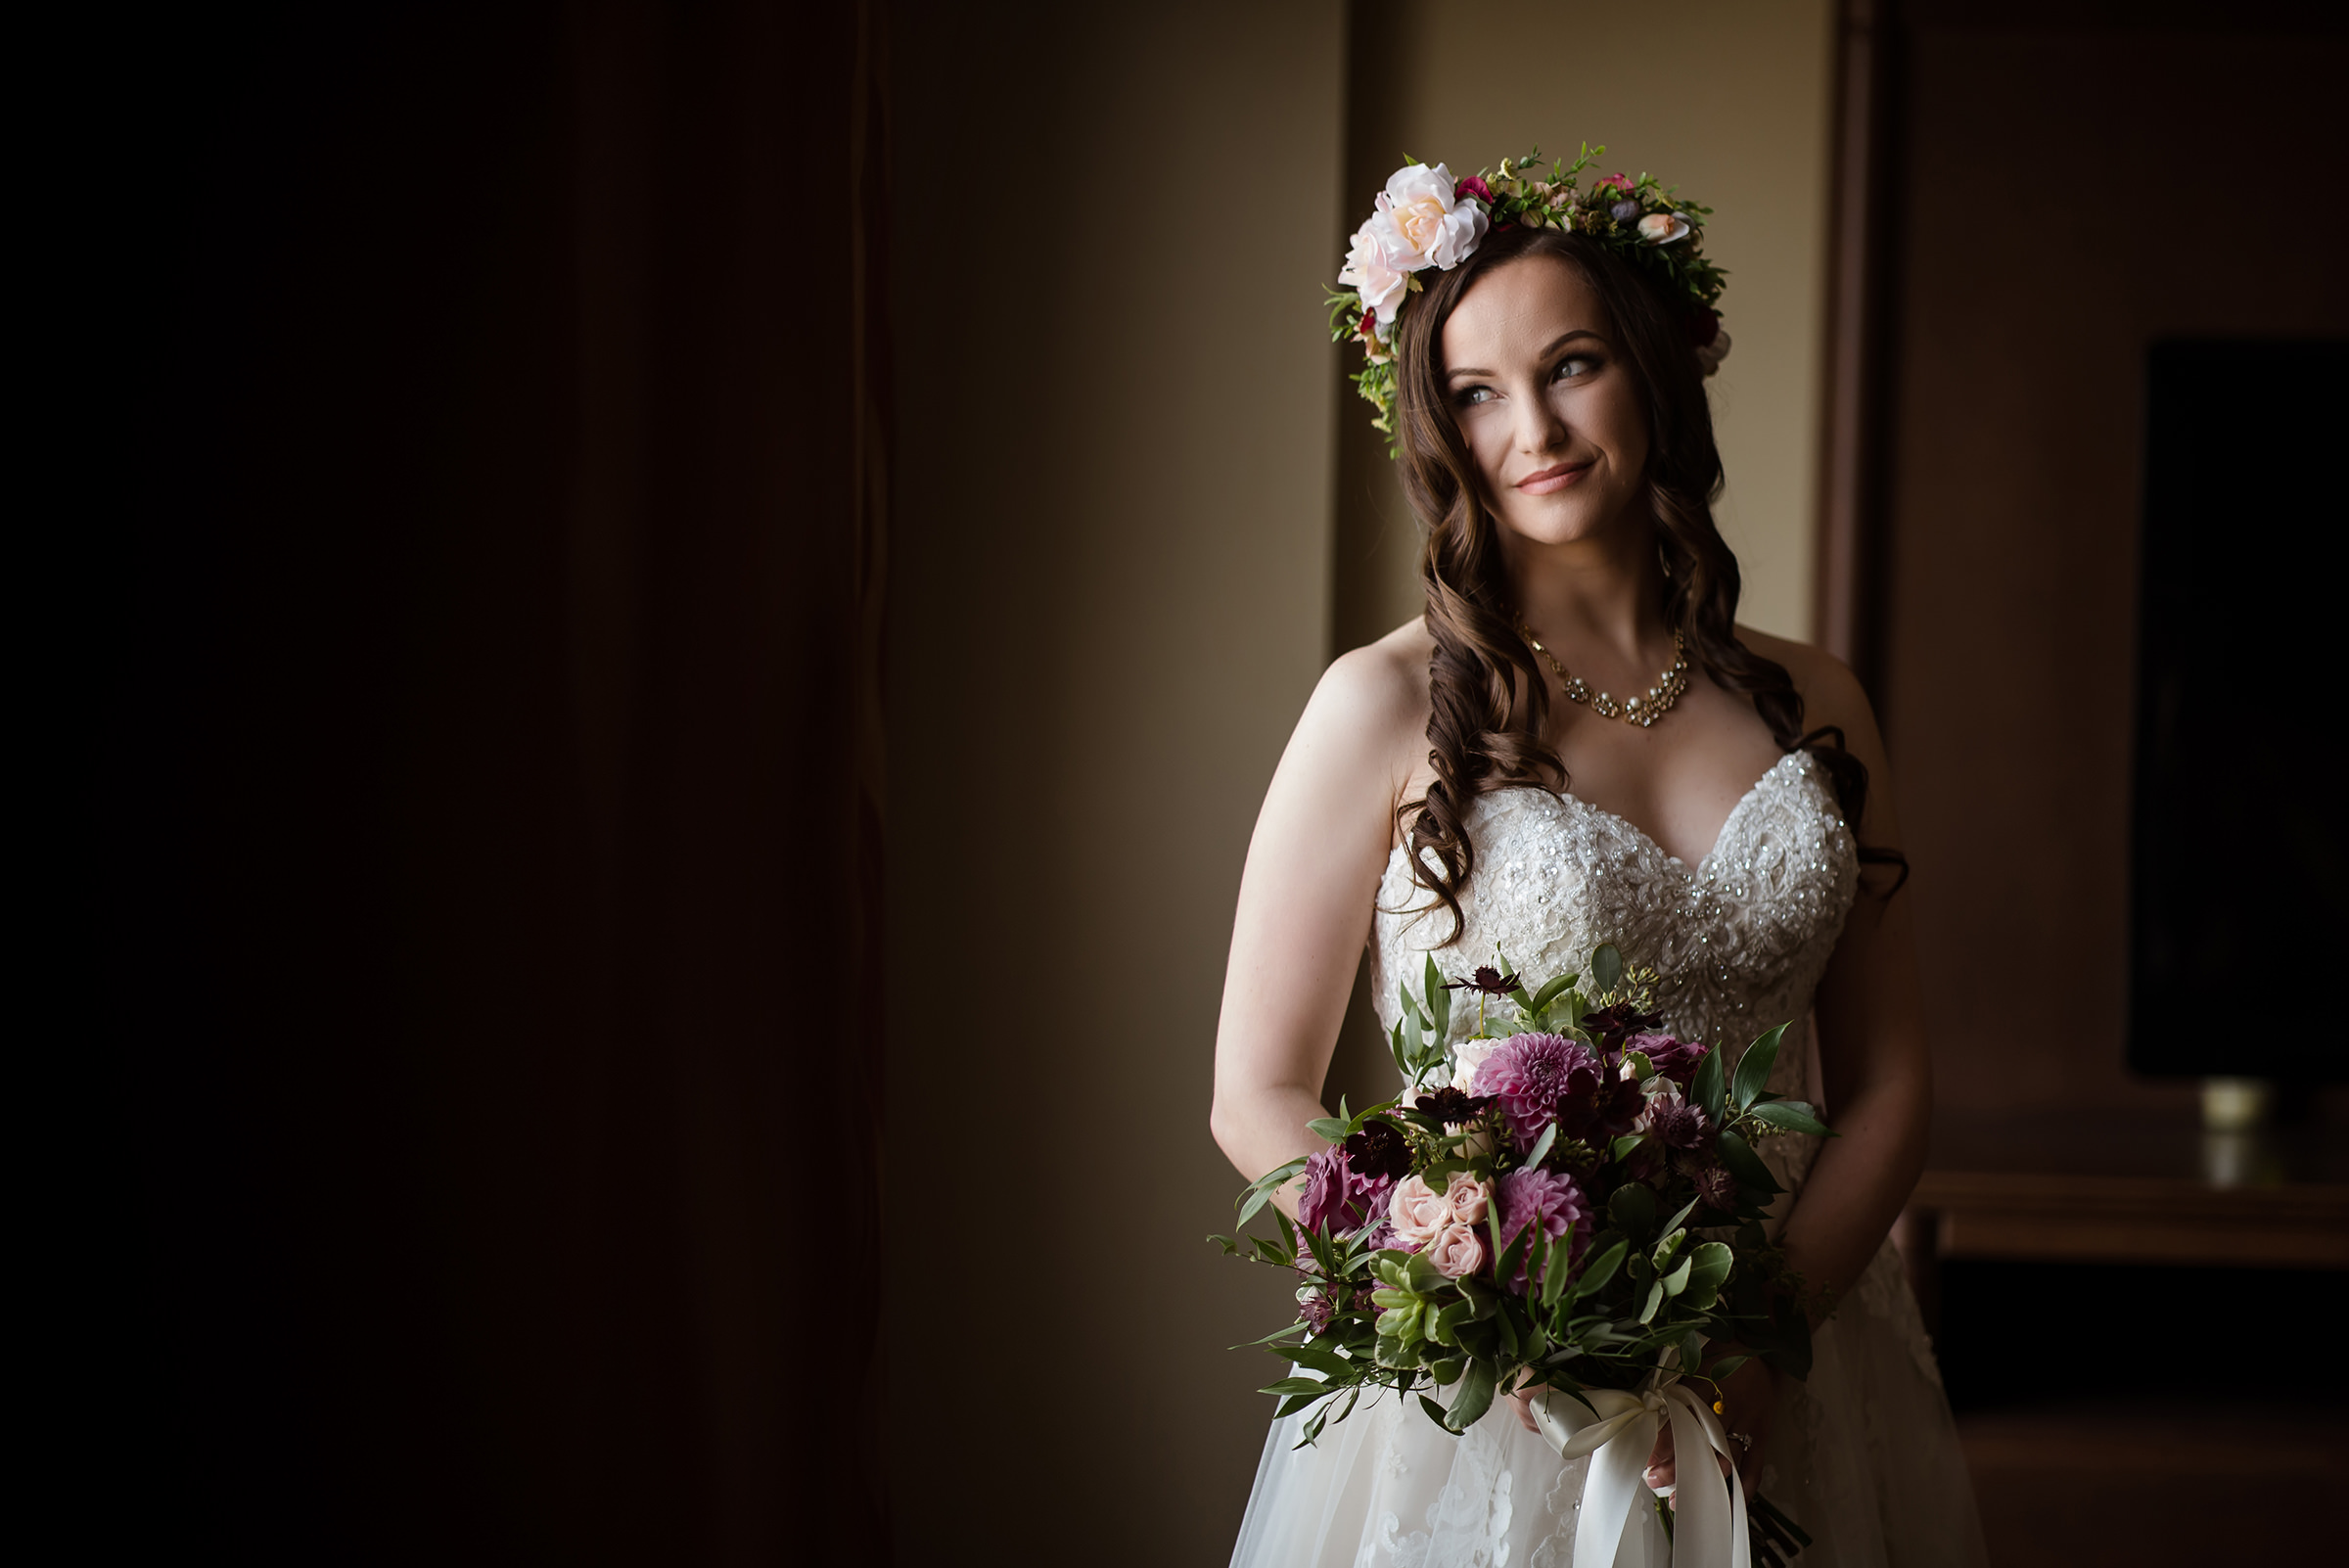 Bride with floral hairpiece and bouquet - photo by David & Sherry Photography